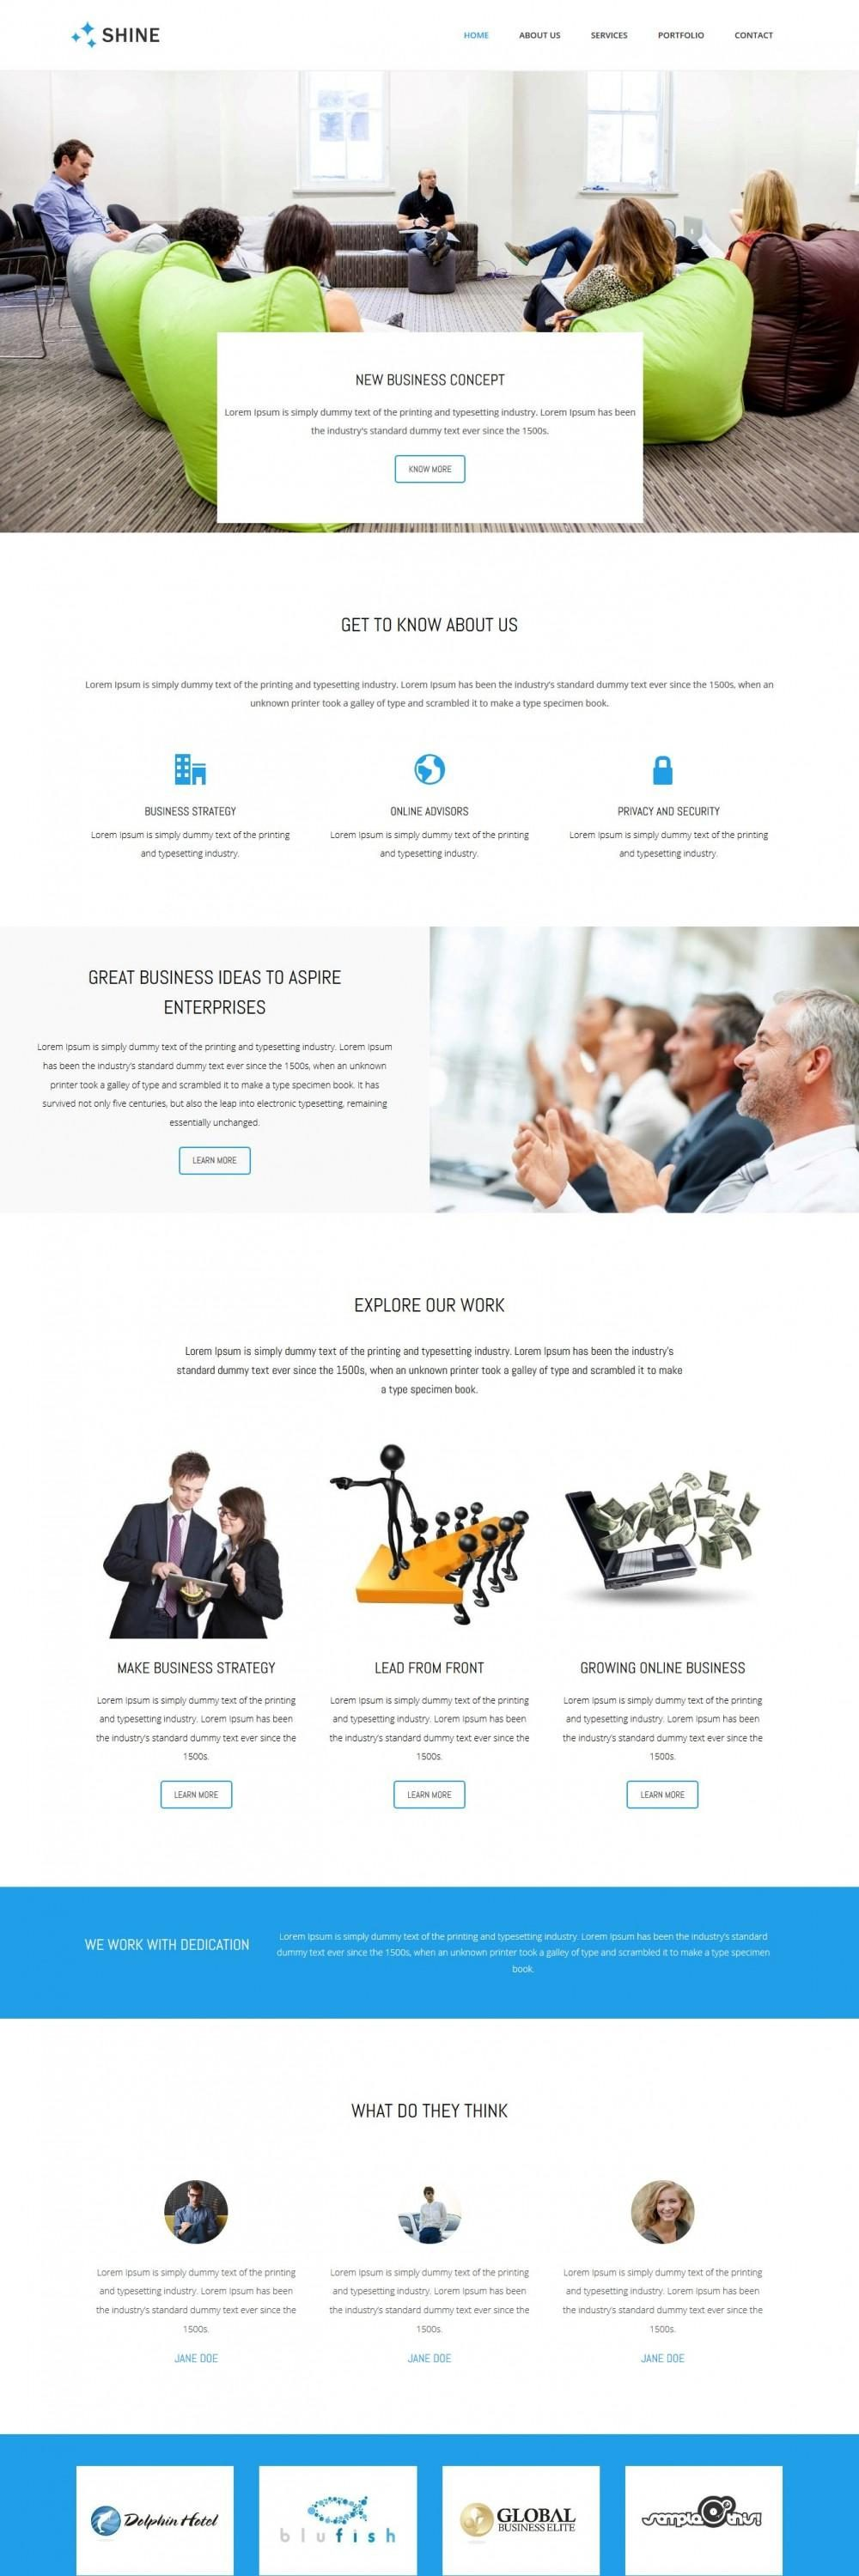 Shine - Business Advisor Joomla Template